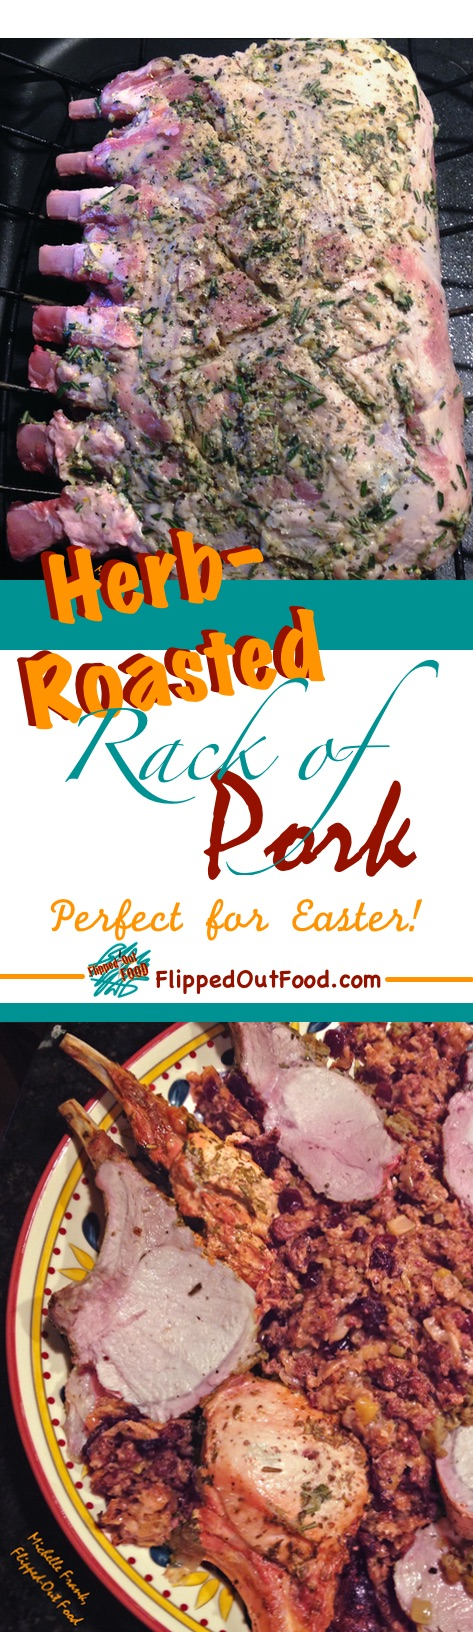 Herb-Roasted Rack of Pork is an easy meal that's fancy enough to impress at Christmas, Easter, or any special-occasion dinner.